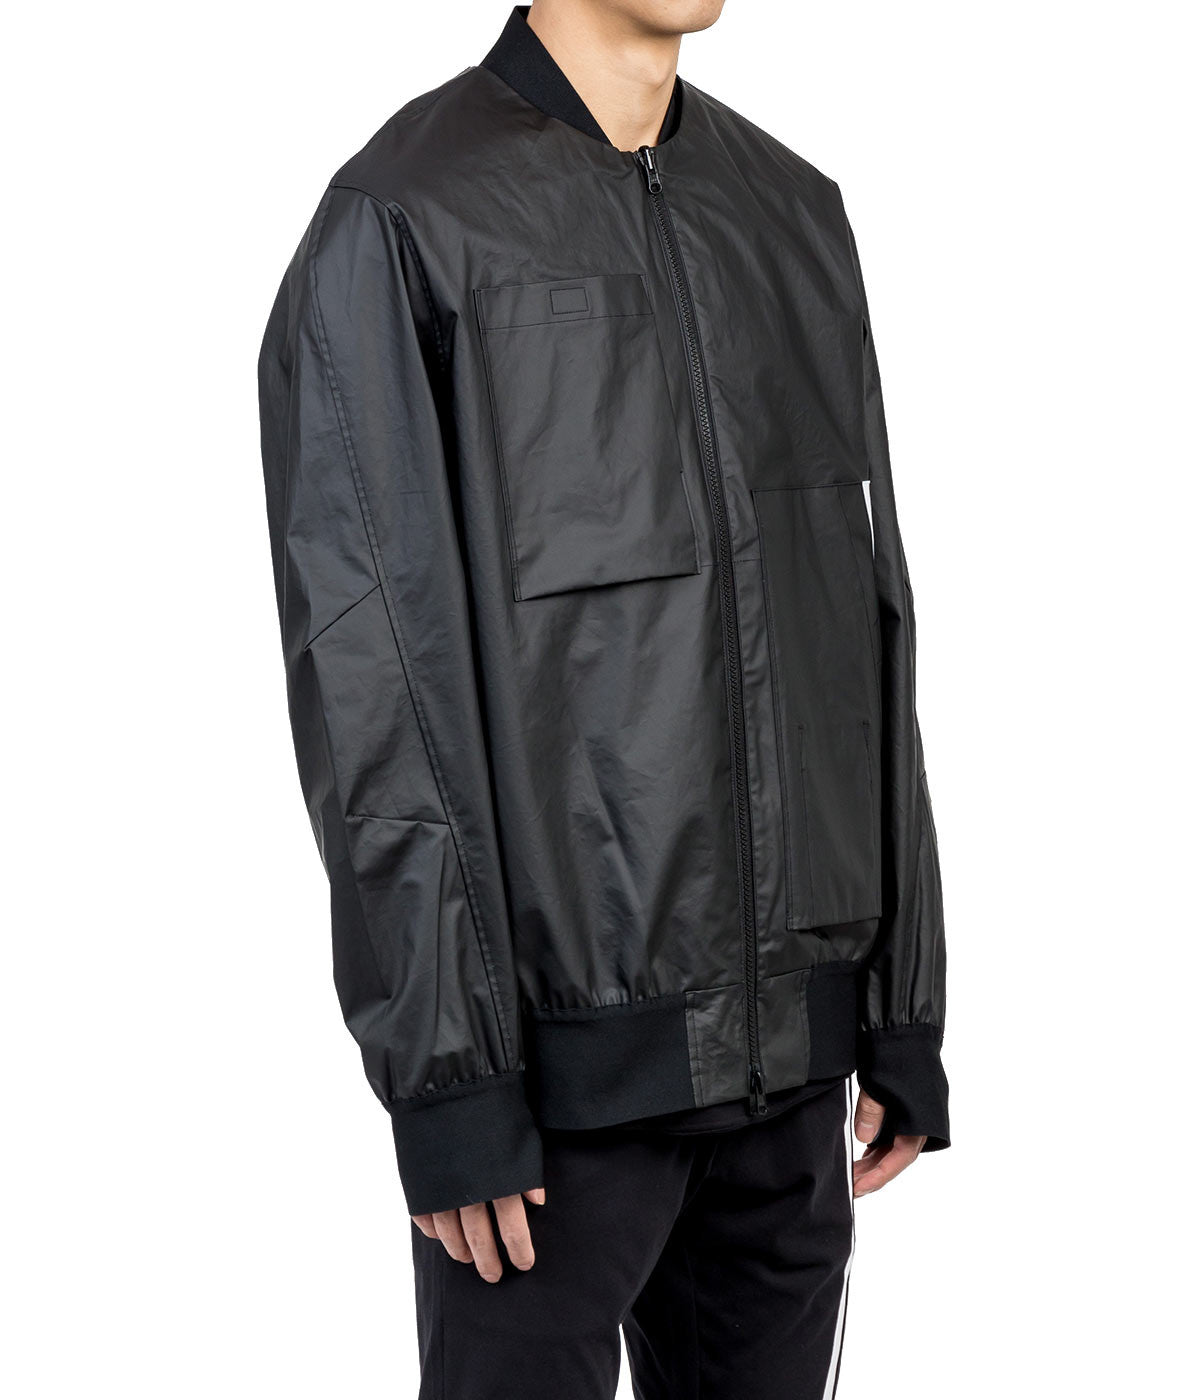 Matte Black Bomber Jacket